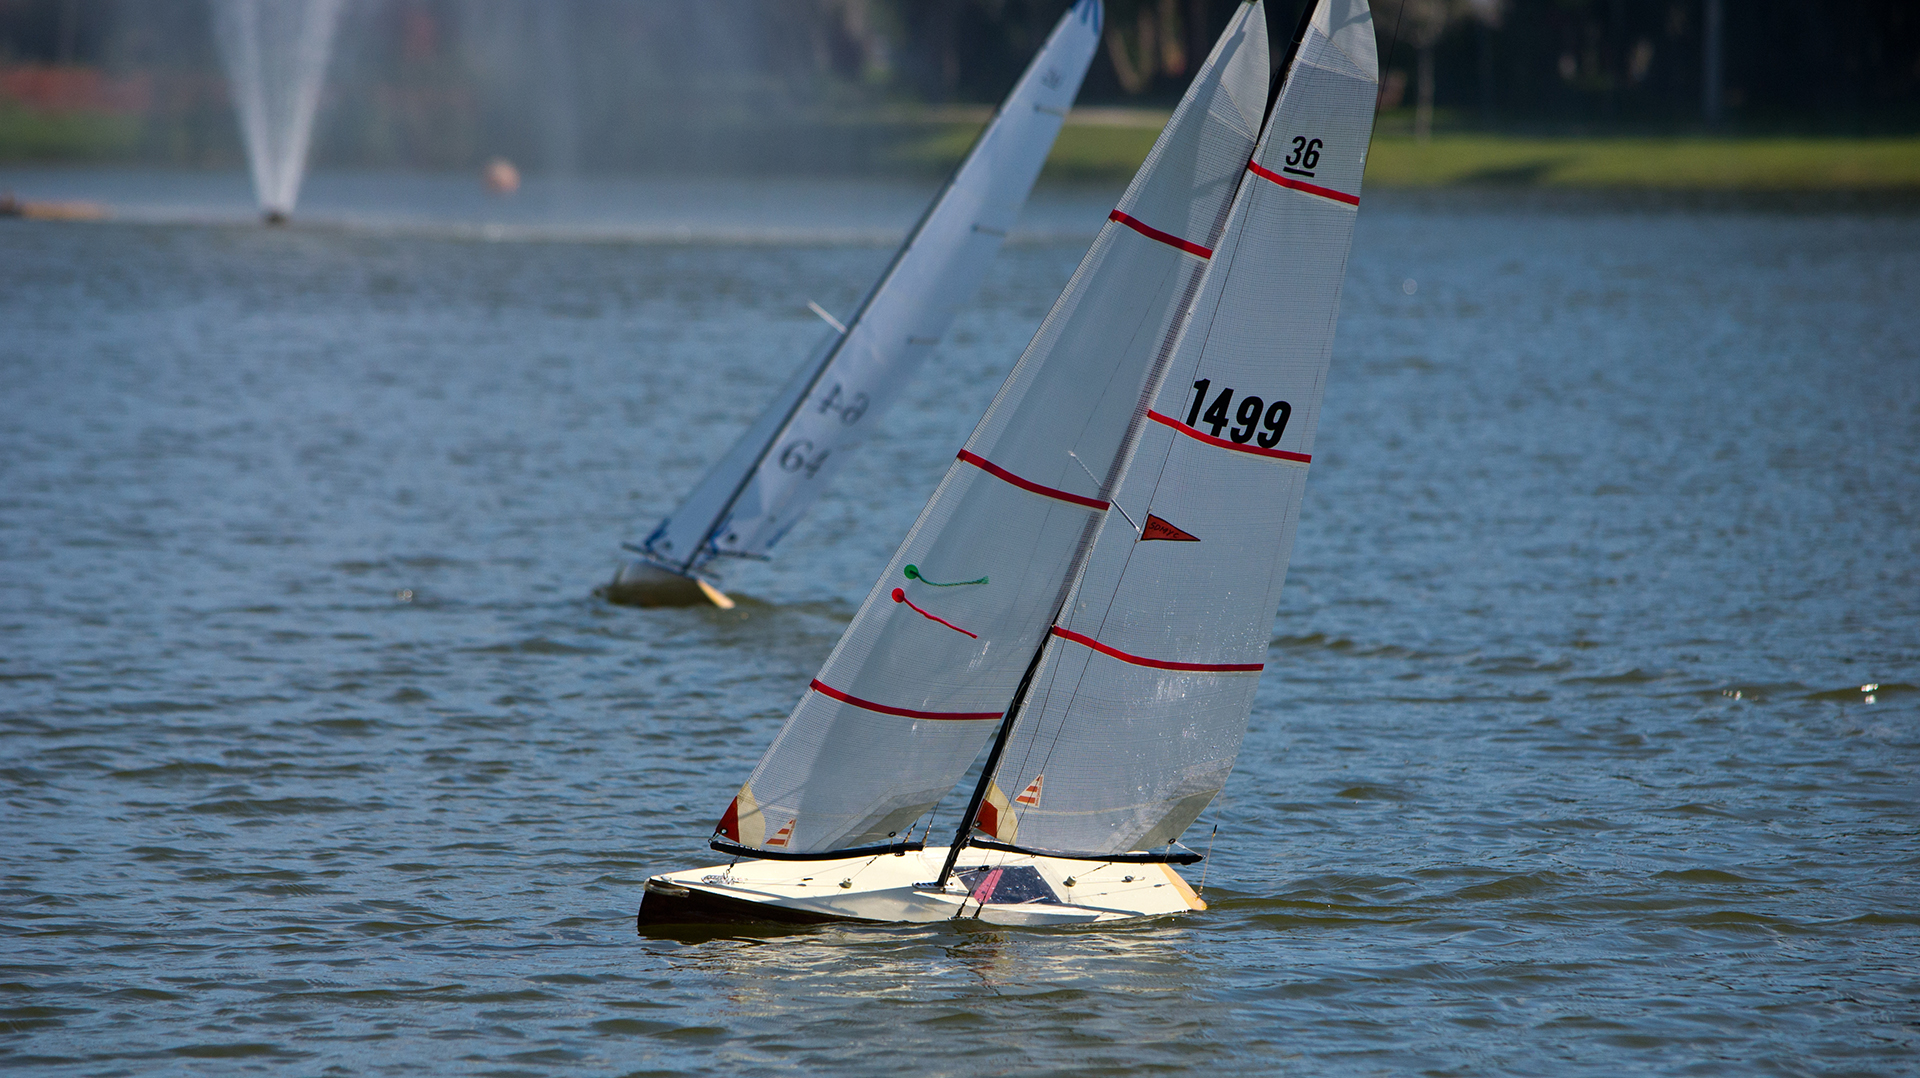 hight resolution of rc sailing clubs are a great resource to get started in the hobby don t be afraid to ask for help